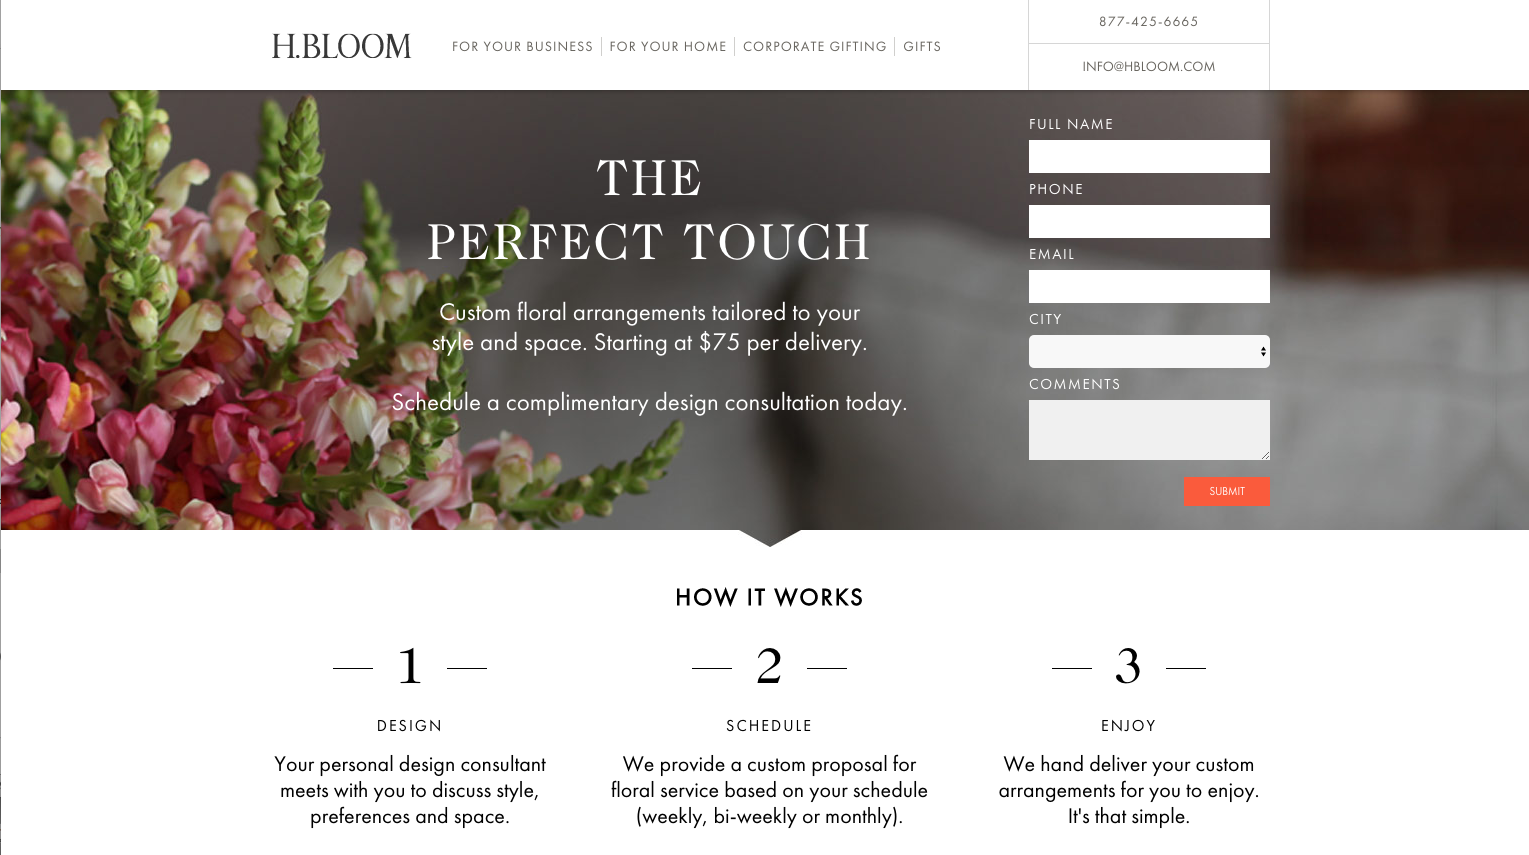 h-bloom-landing page conversion